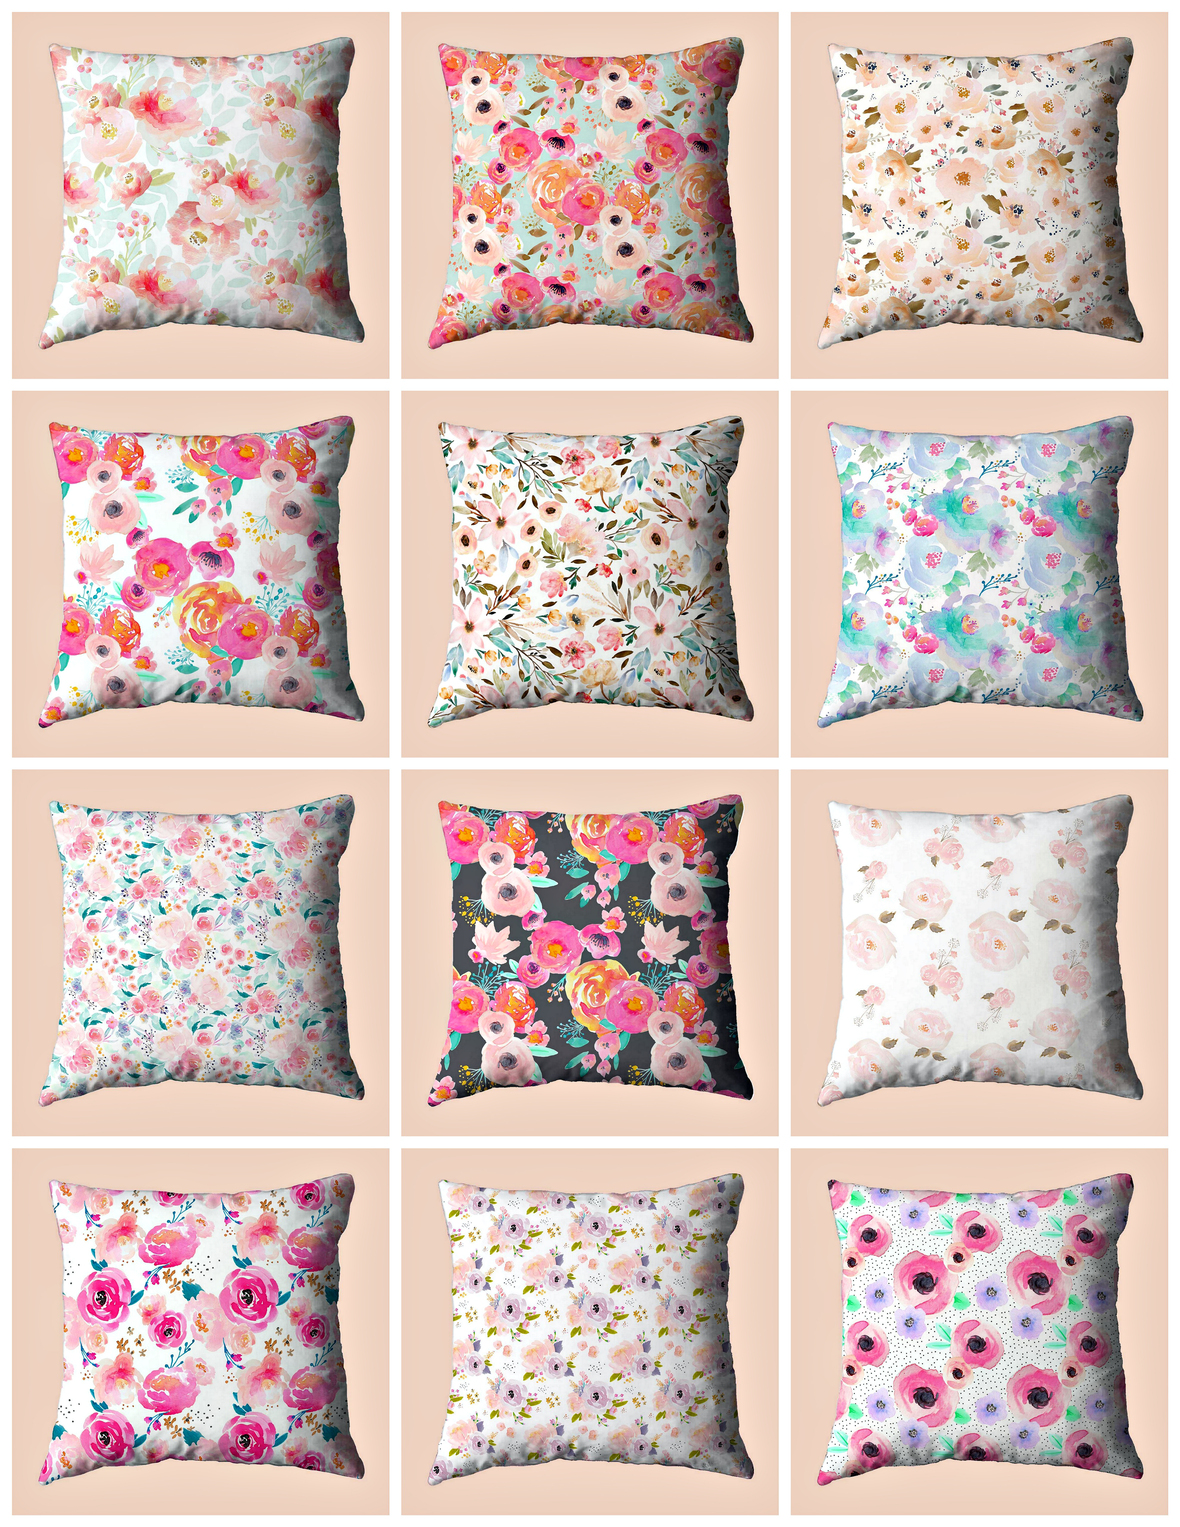 Indy Bloom Watercolor Floral Fabric Pillows Hawthorne Threads